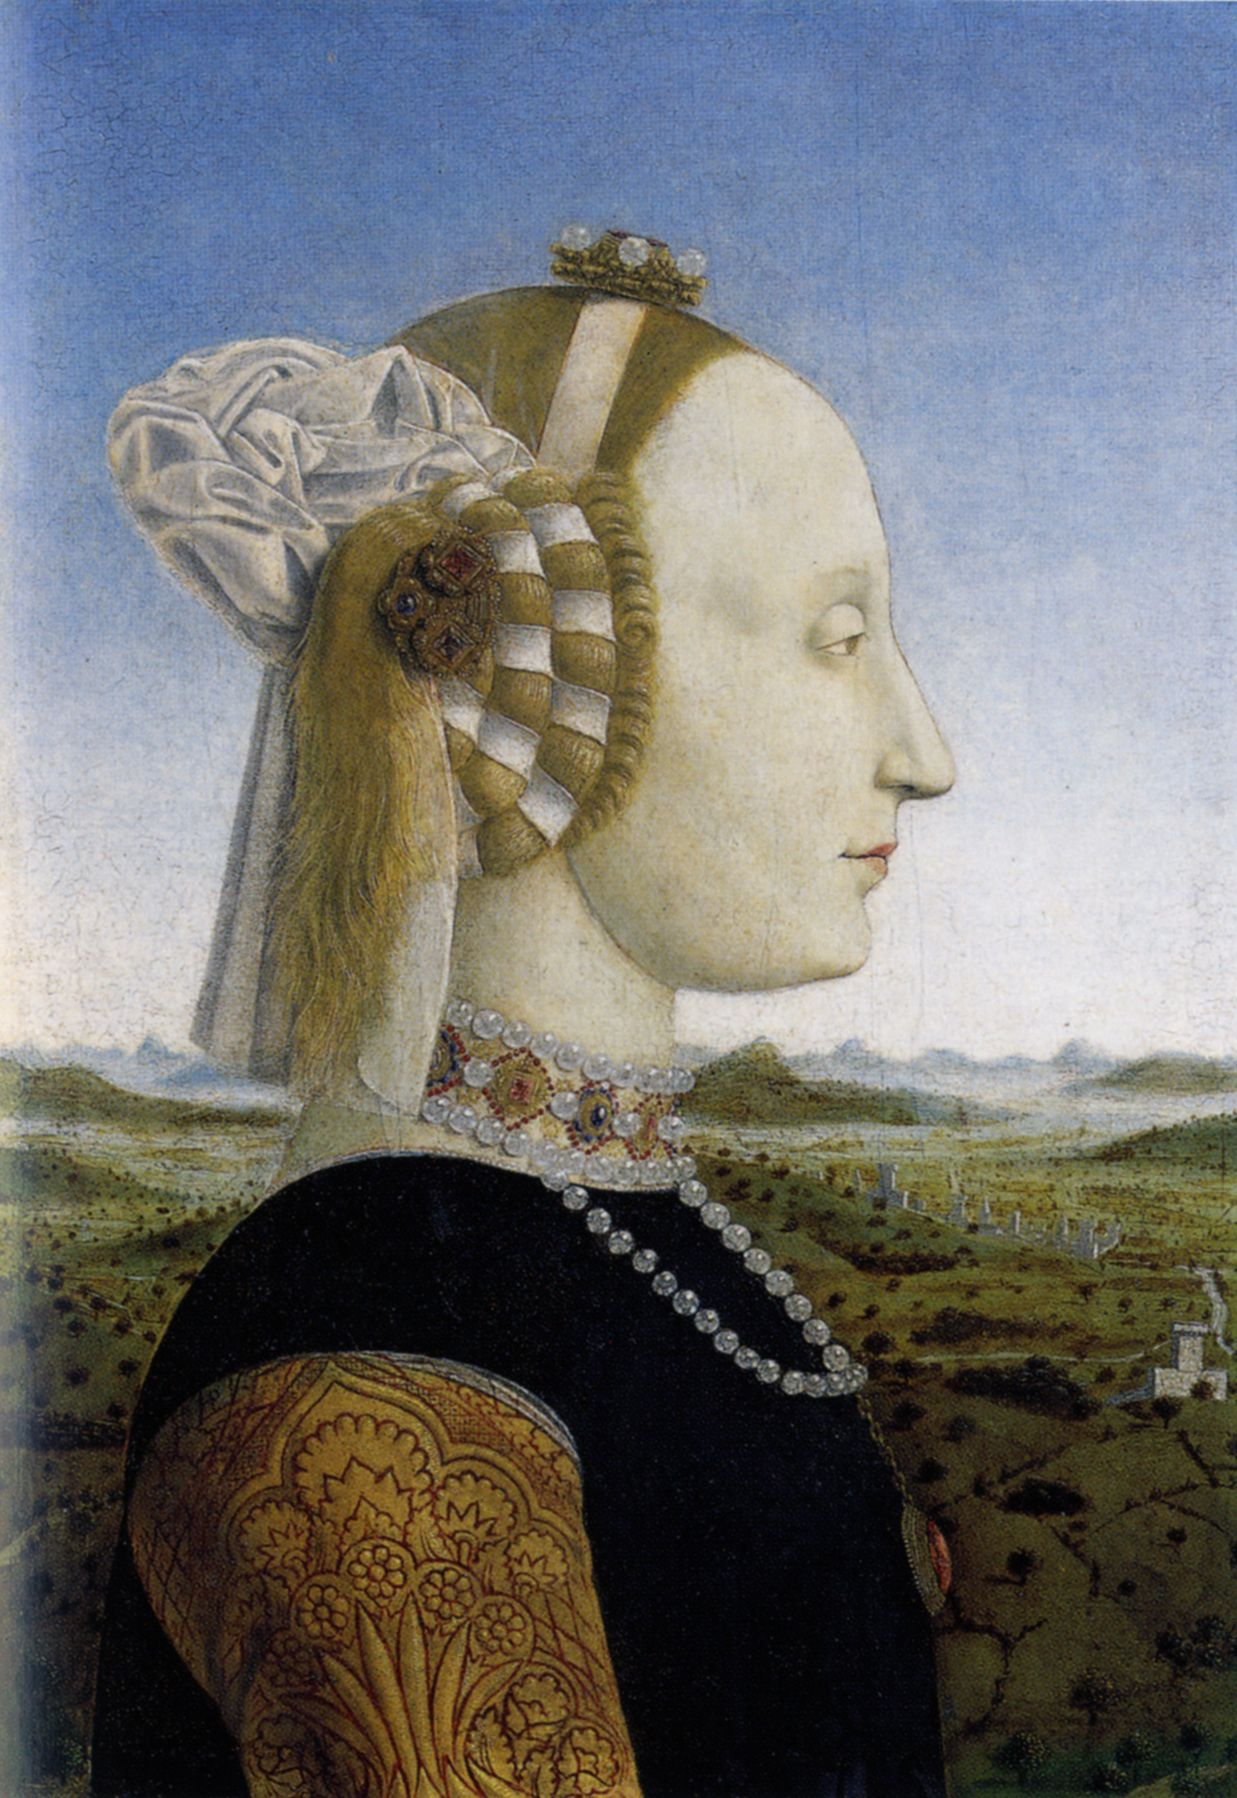 Piero Della Francesca Portrait Of Battista Sforza 1447 72 Duchess Of Urbino Uffizi Firenze Renaissance Paintings Renaissance Portraits Renaissance Art